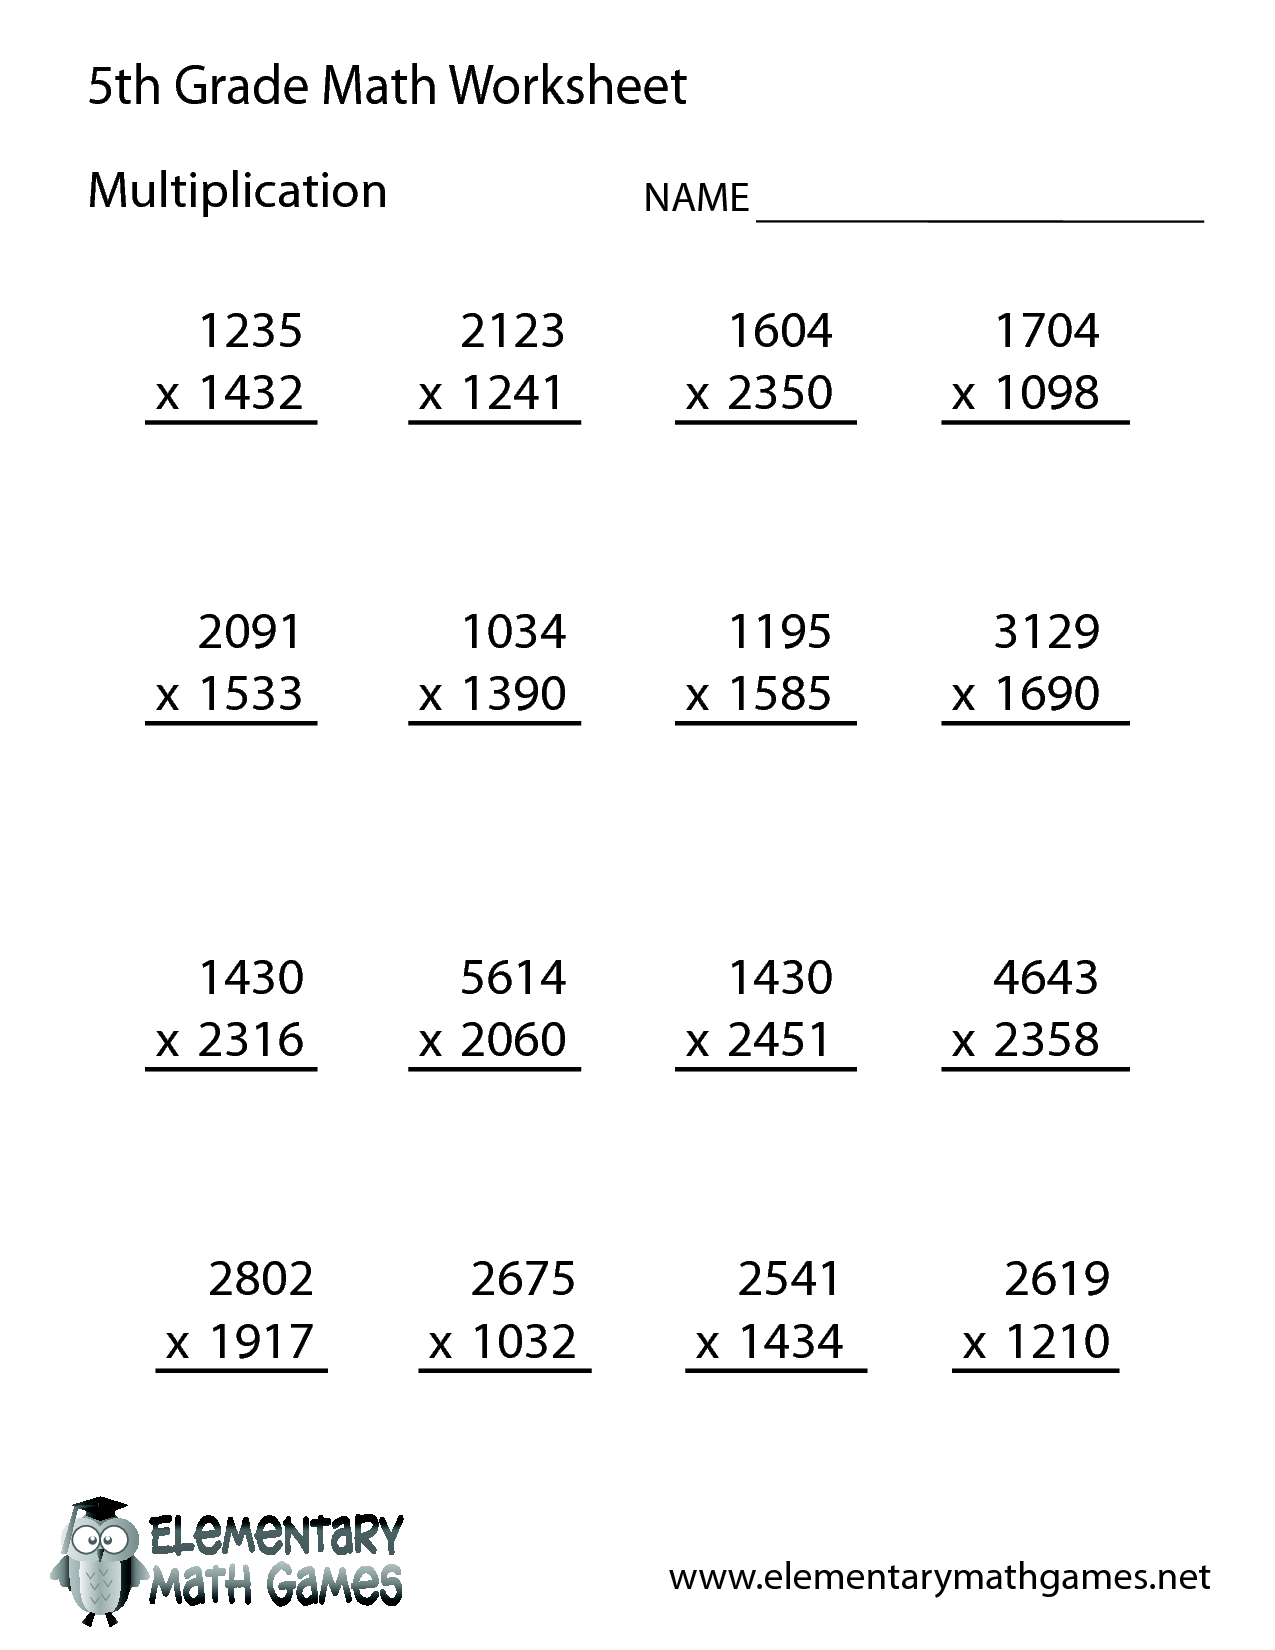 6 7 8 and 9 times tables multiplication math worksheets third – Free Math Worksheets Grade 7